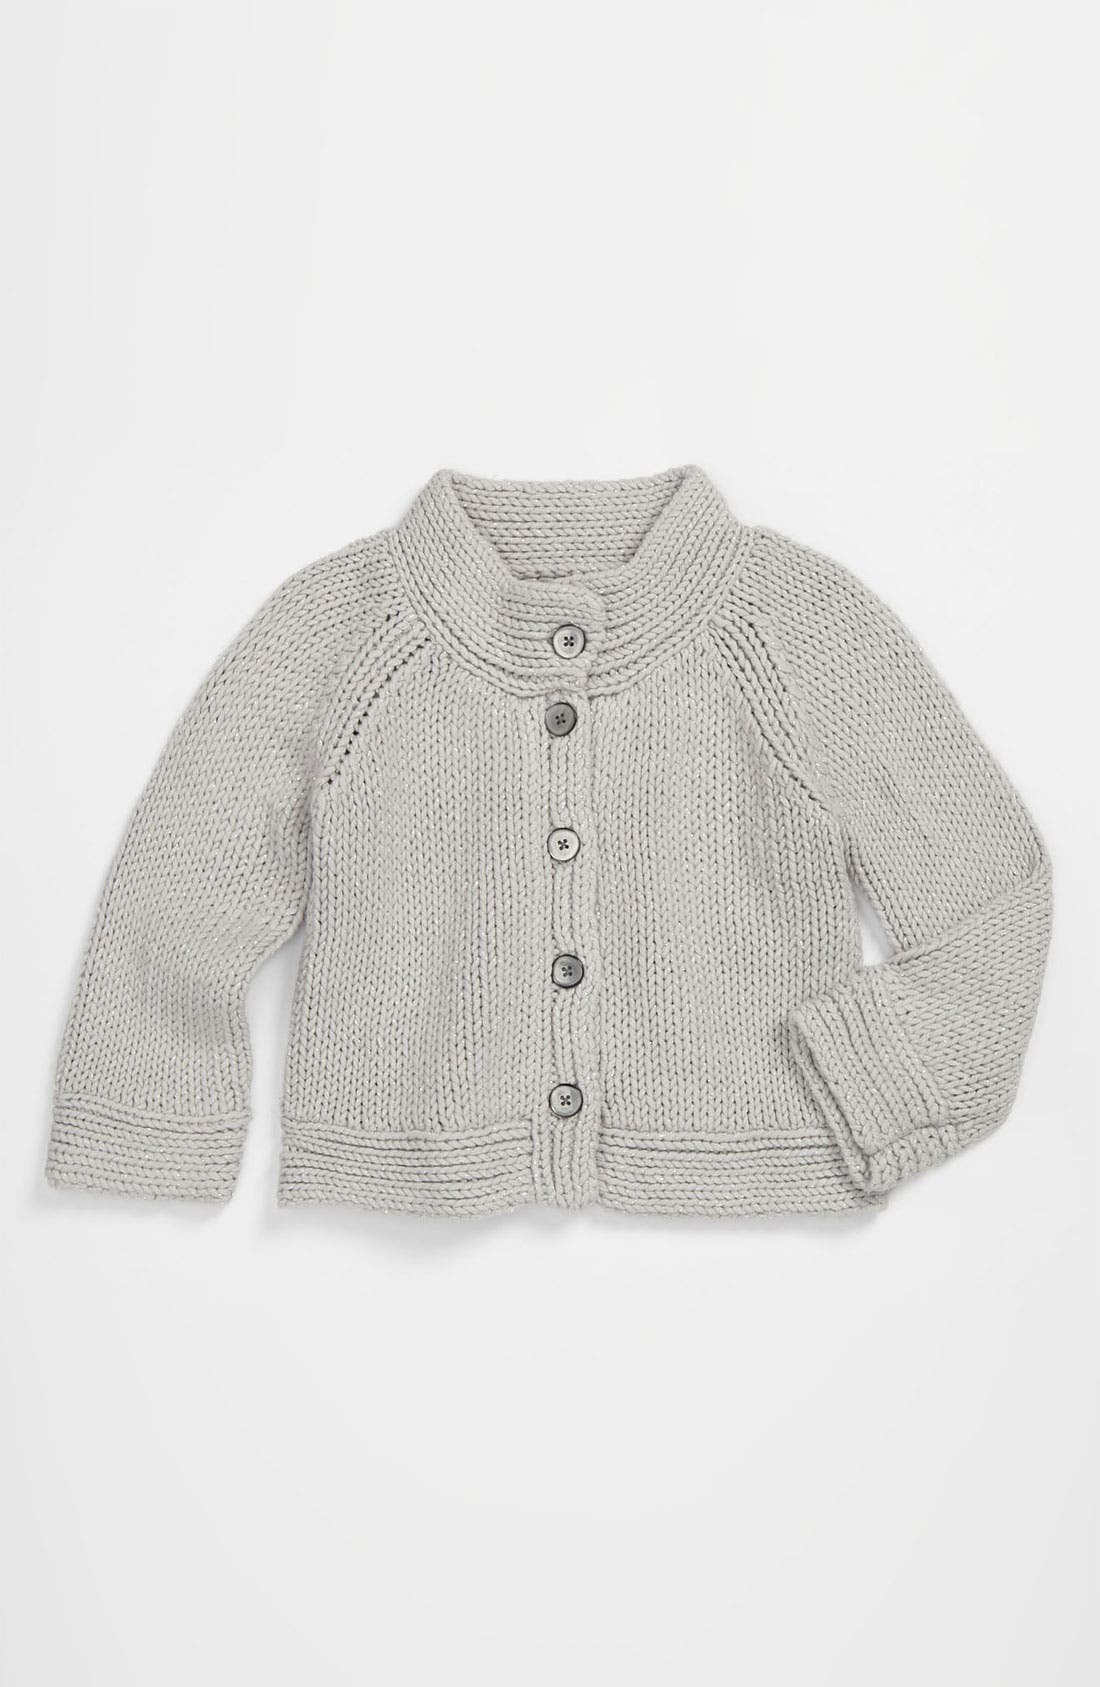 Alternate Image 1 Selected - Tea Collection 'Sparkle Chic' Sweater (Little Girls & Big Girls)